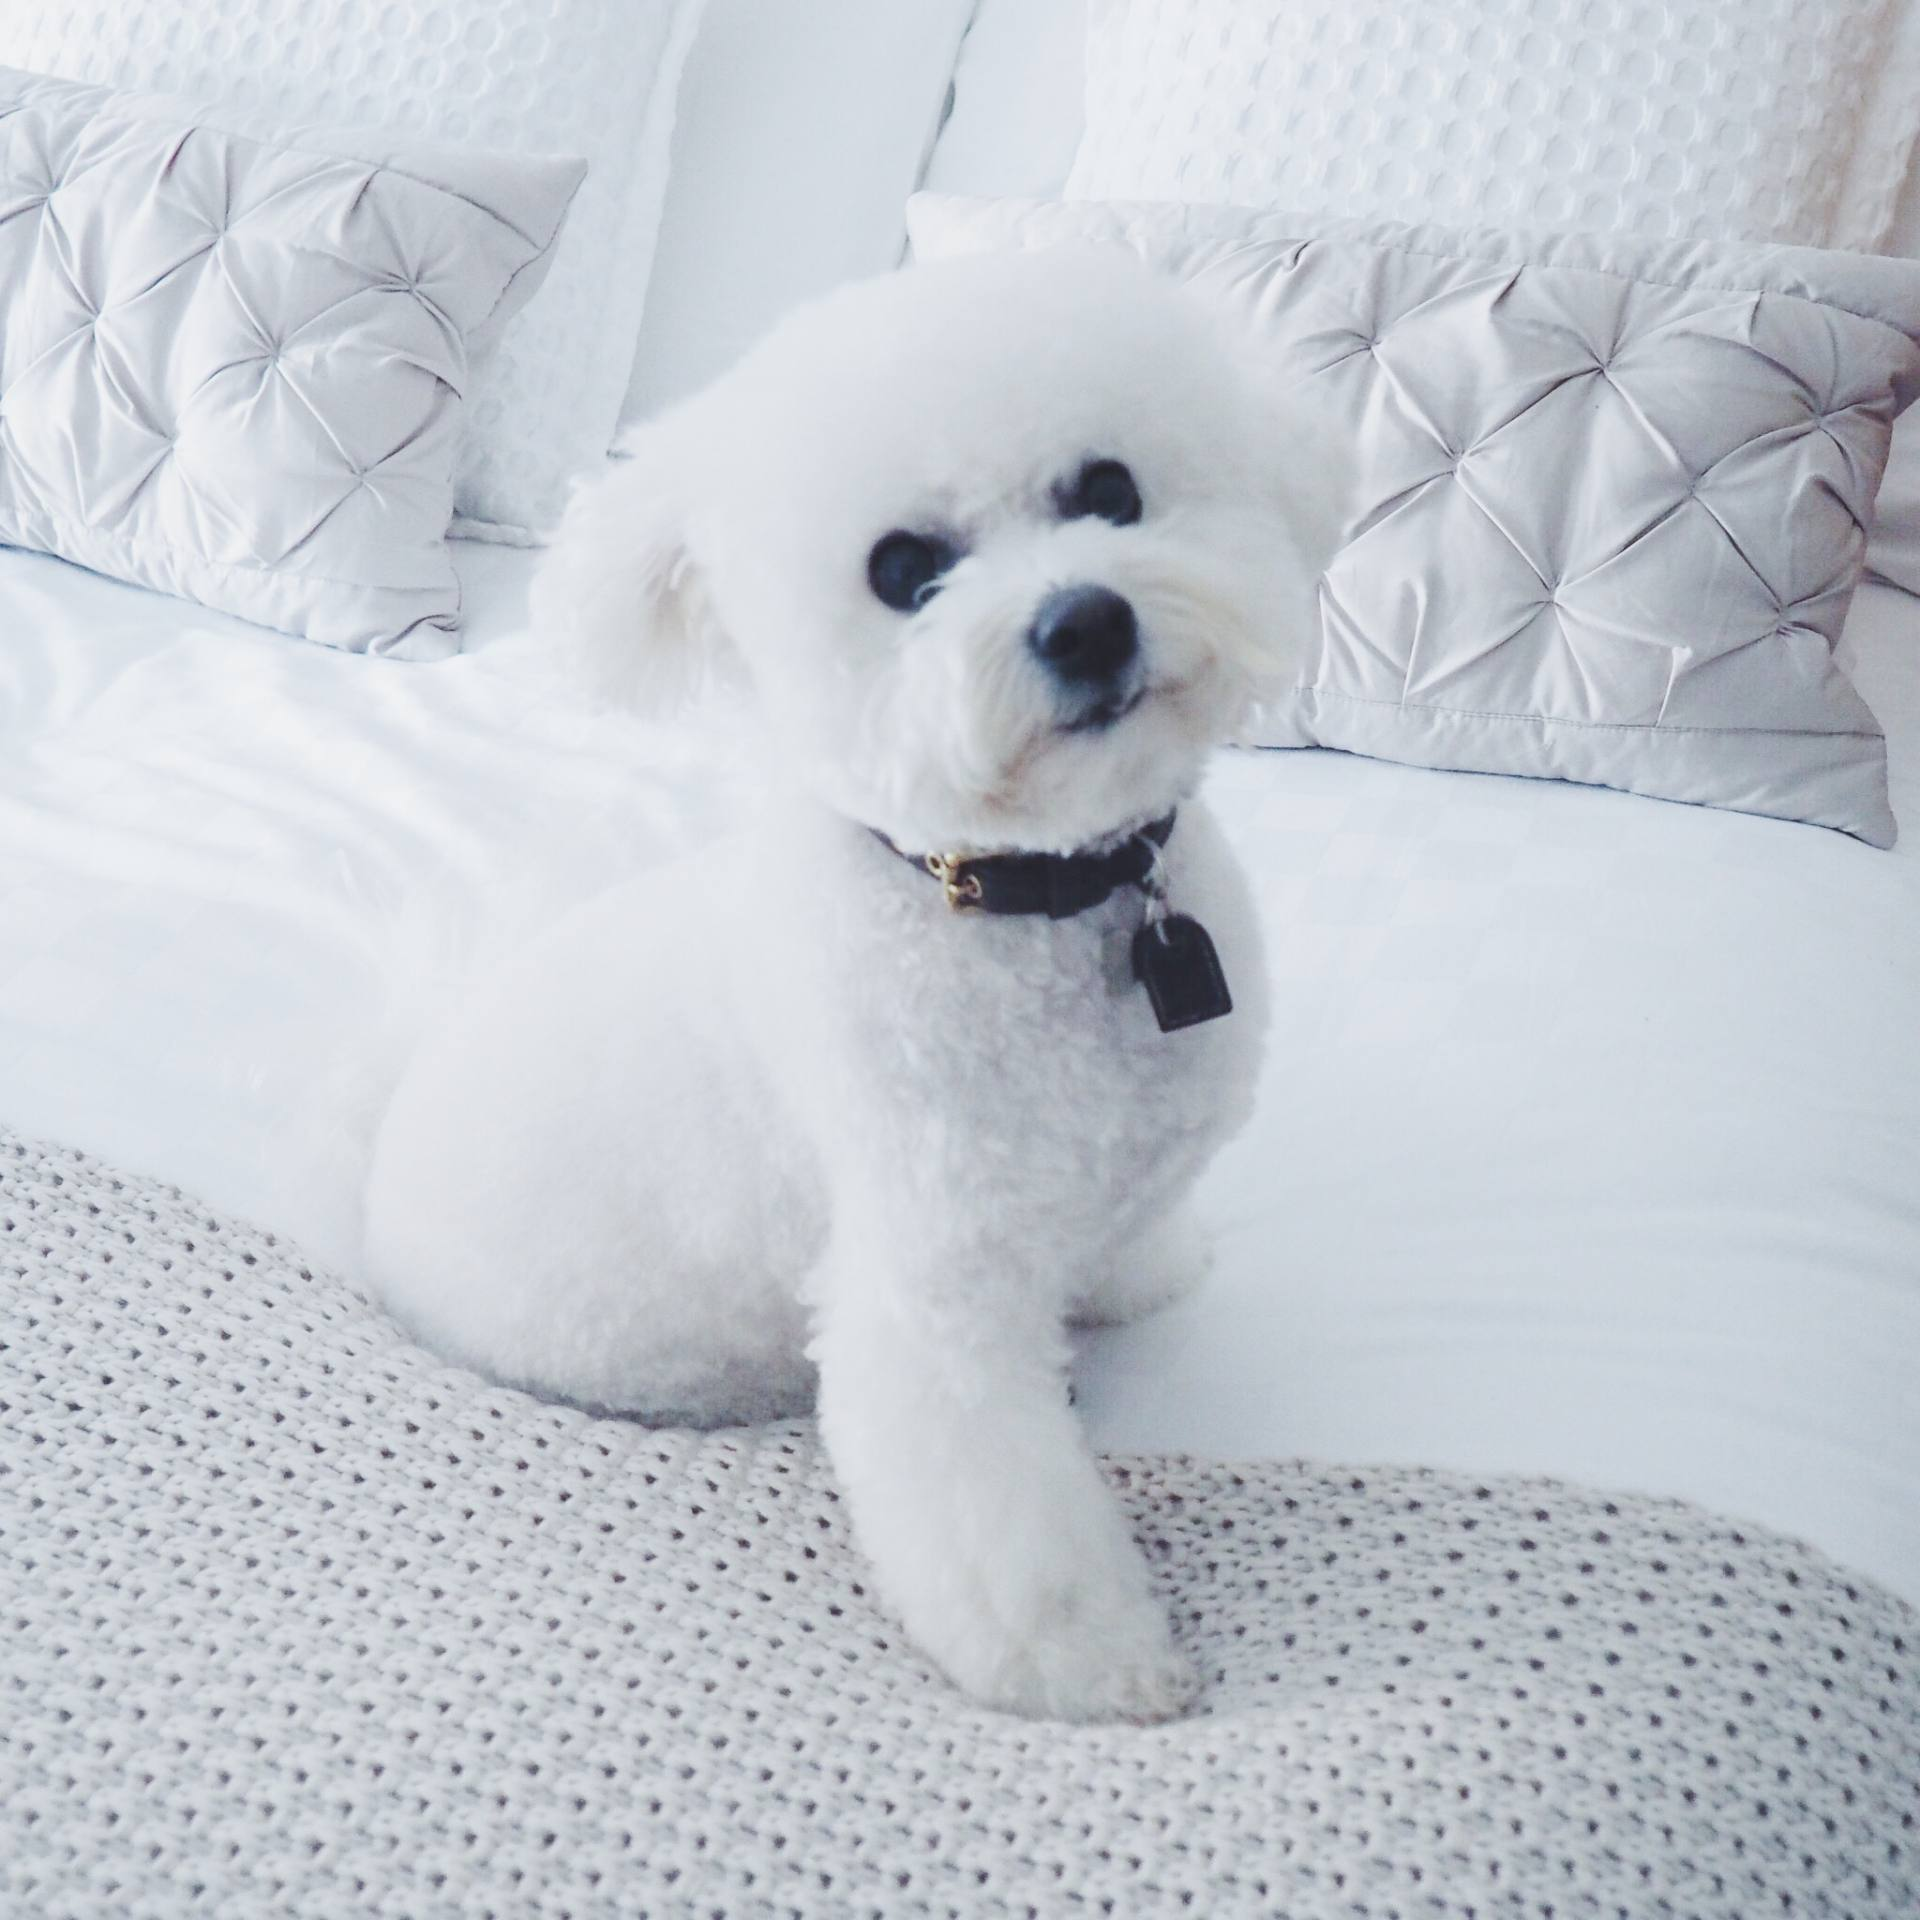 A picture of a white fluffy dog